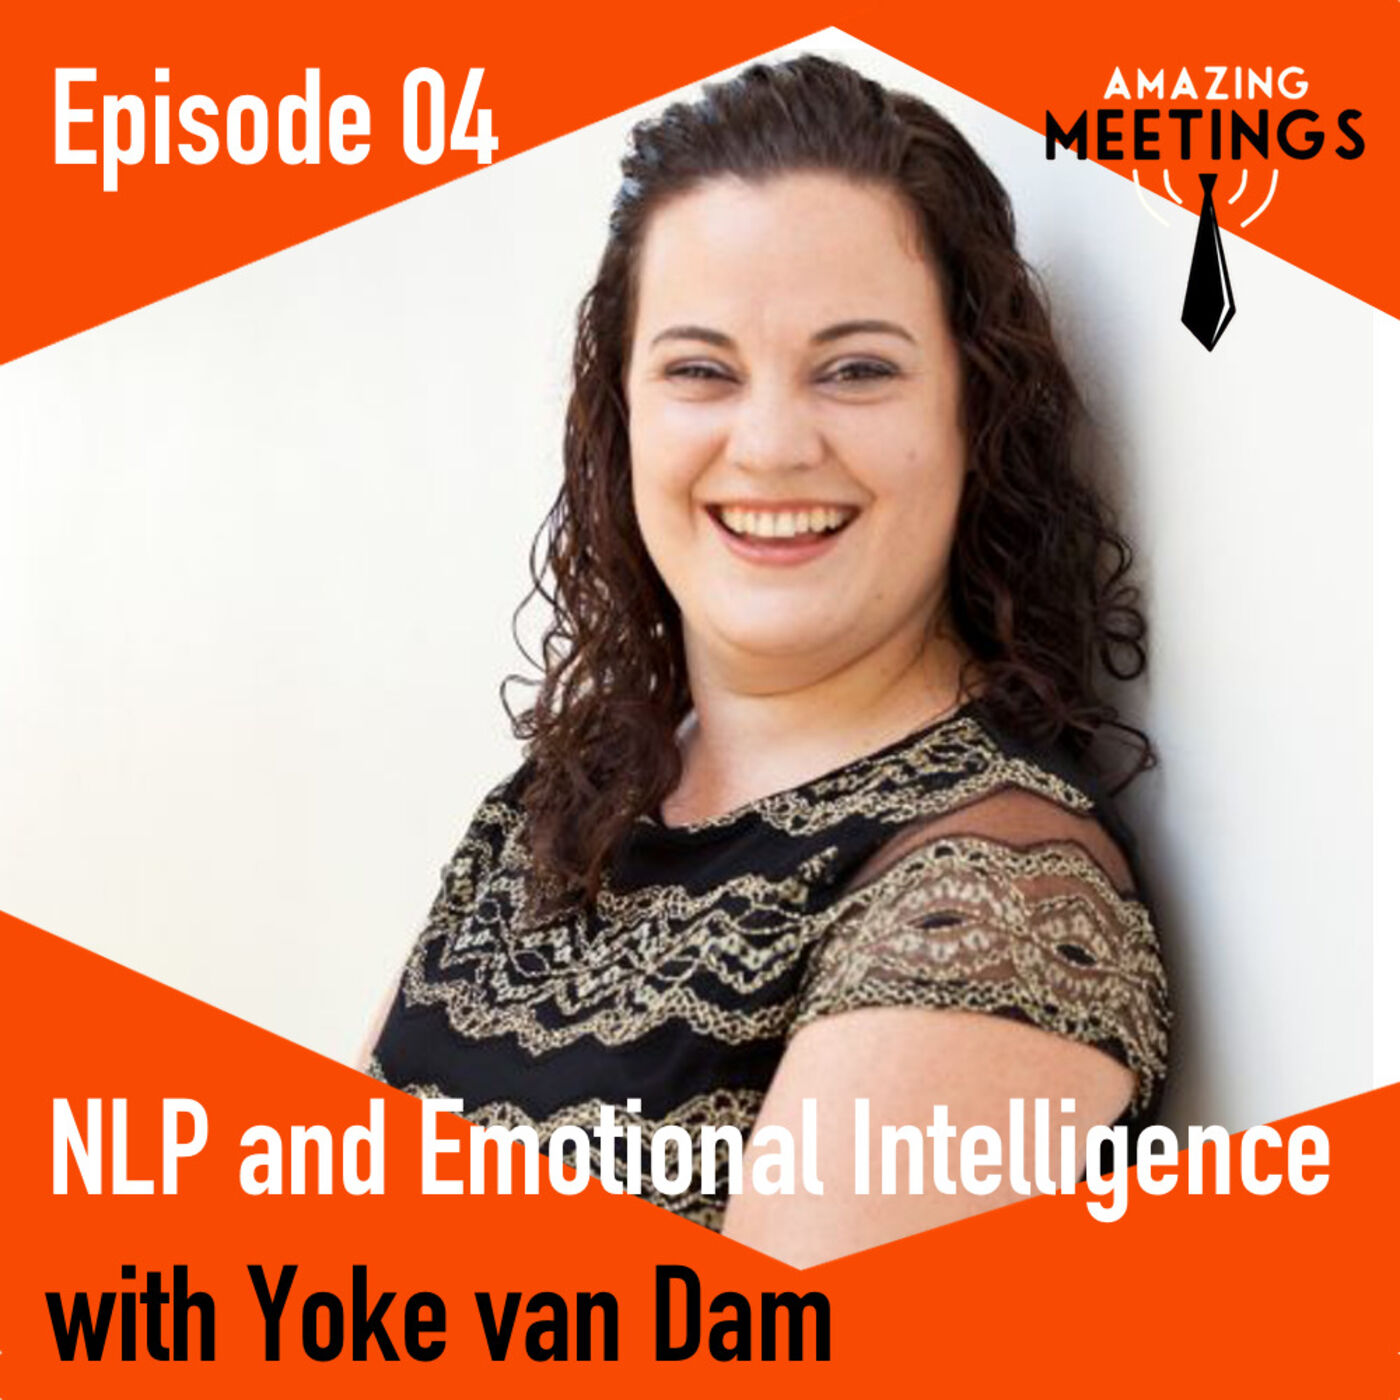 NLP and Emotional Intelligence with Yoke van Dam